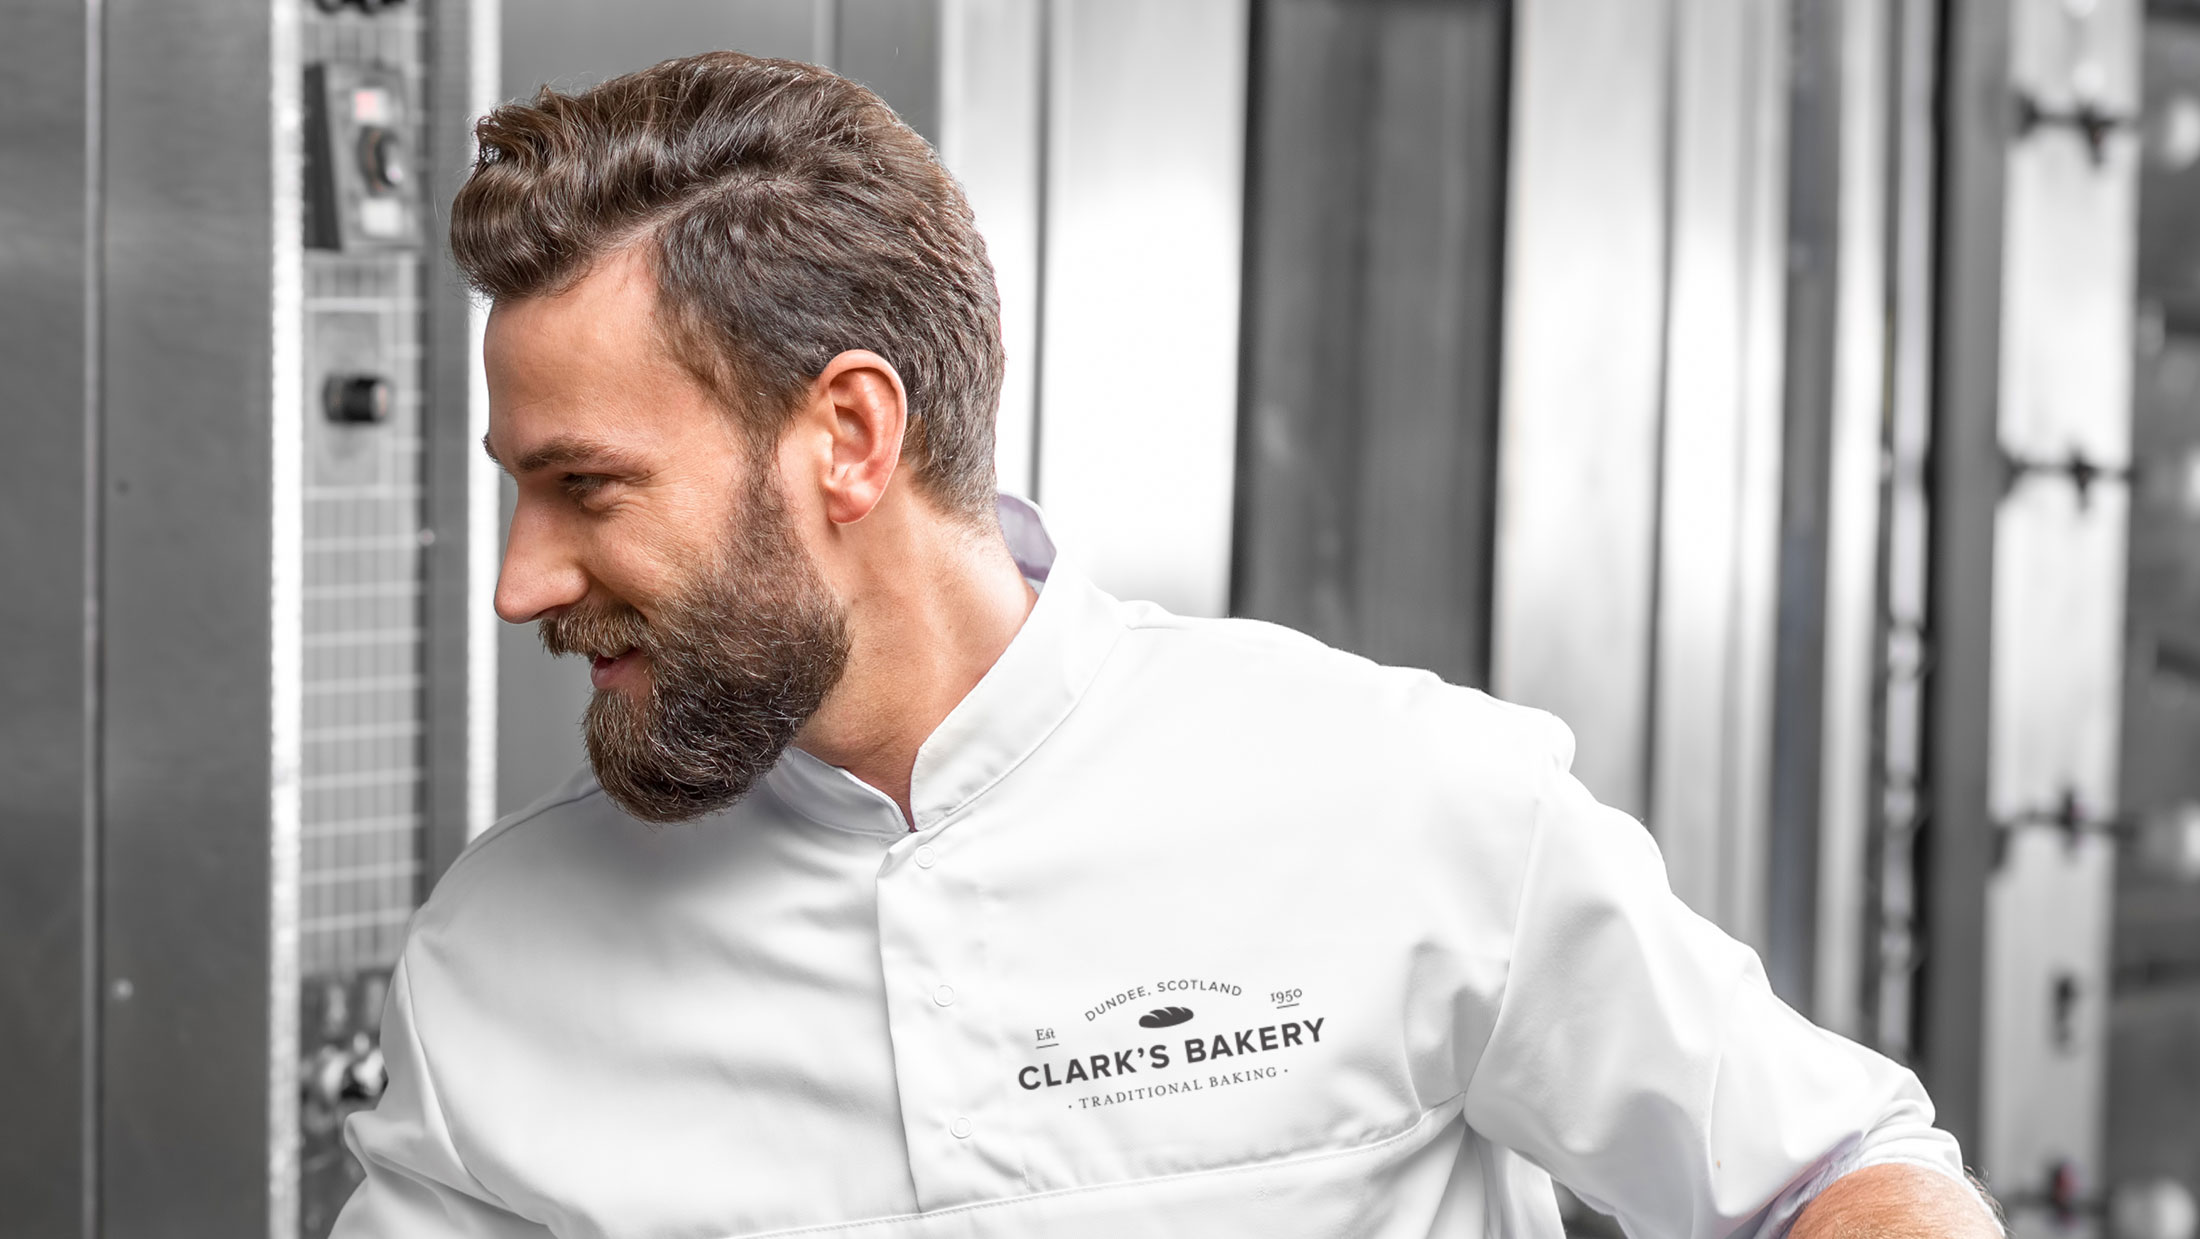 Man with beard wearing baker's whites with the Clark's Bakery logo